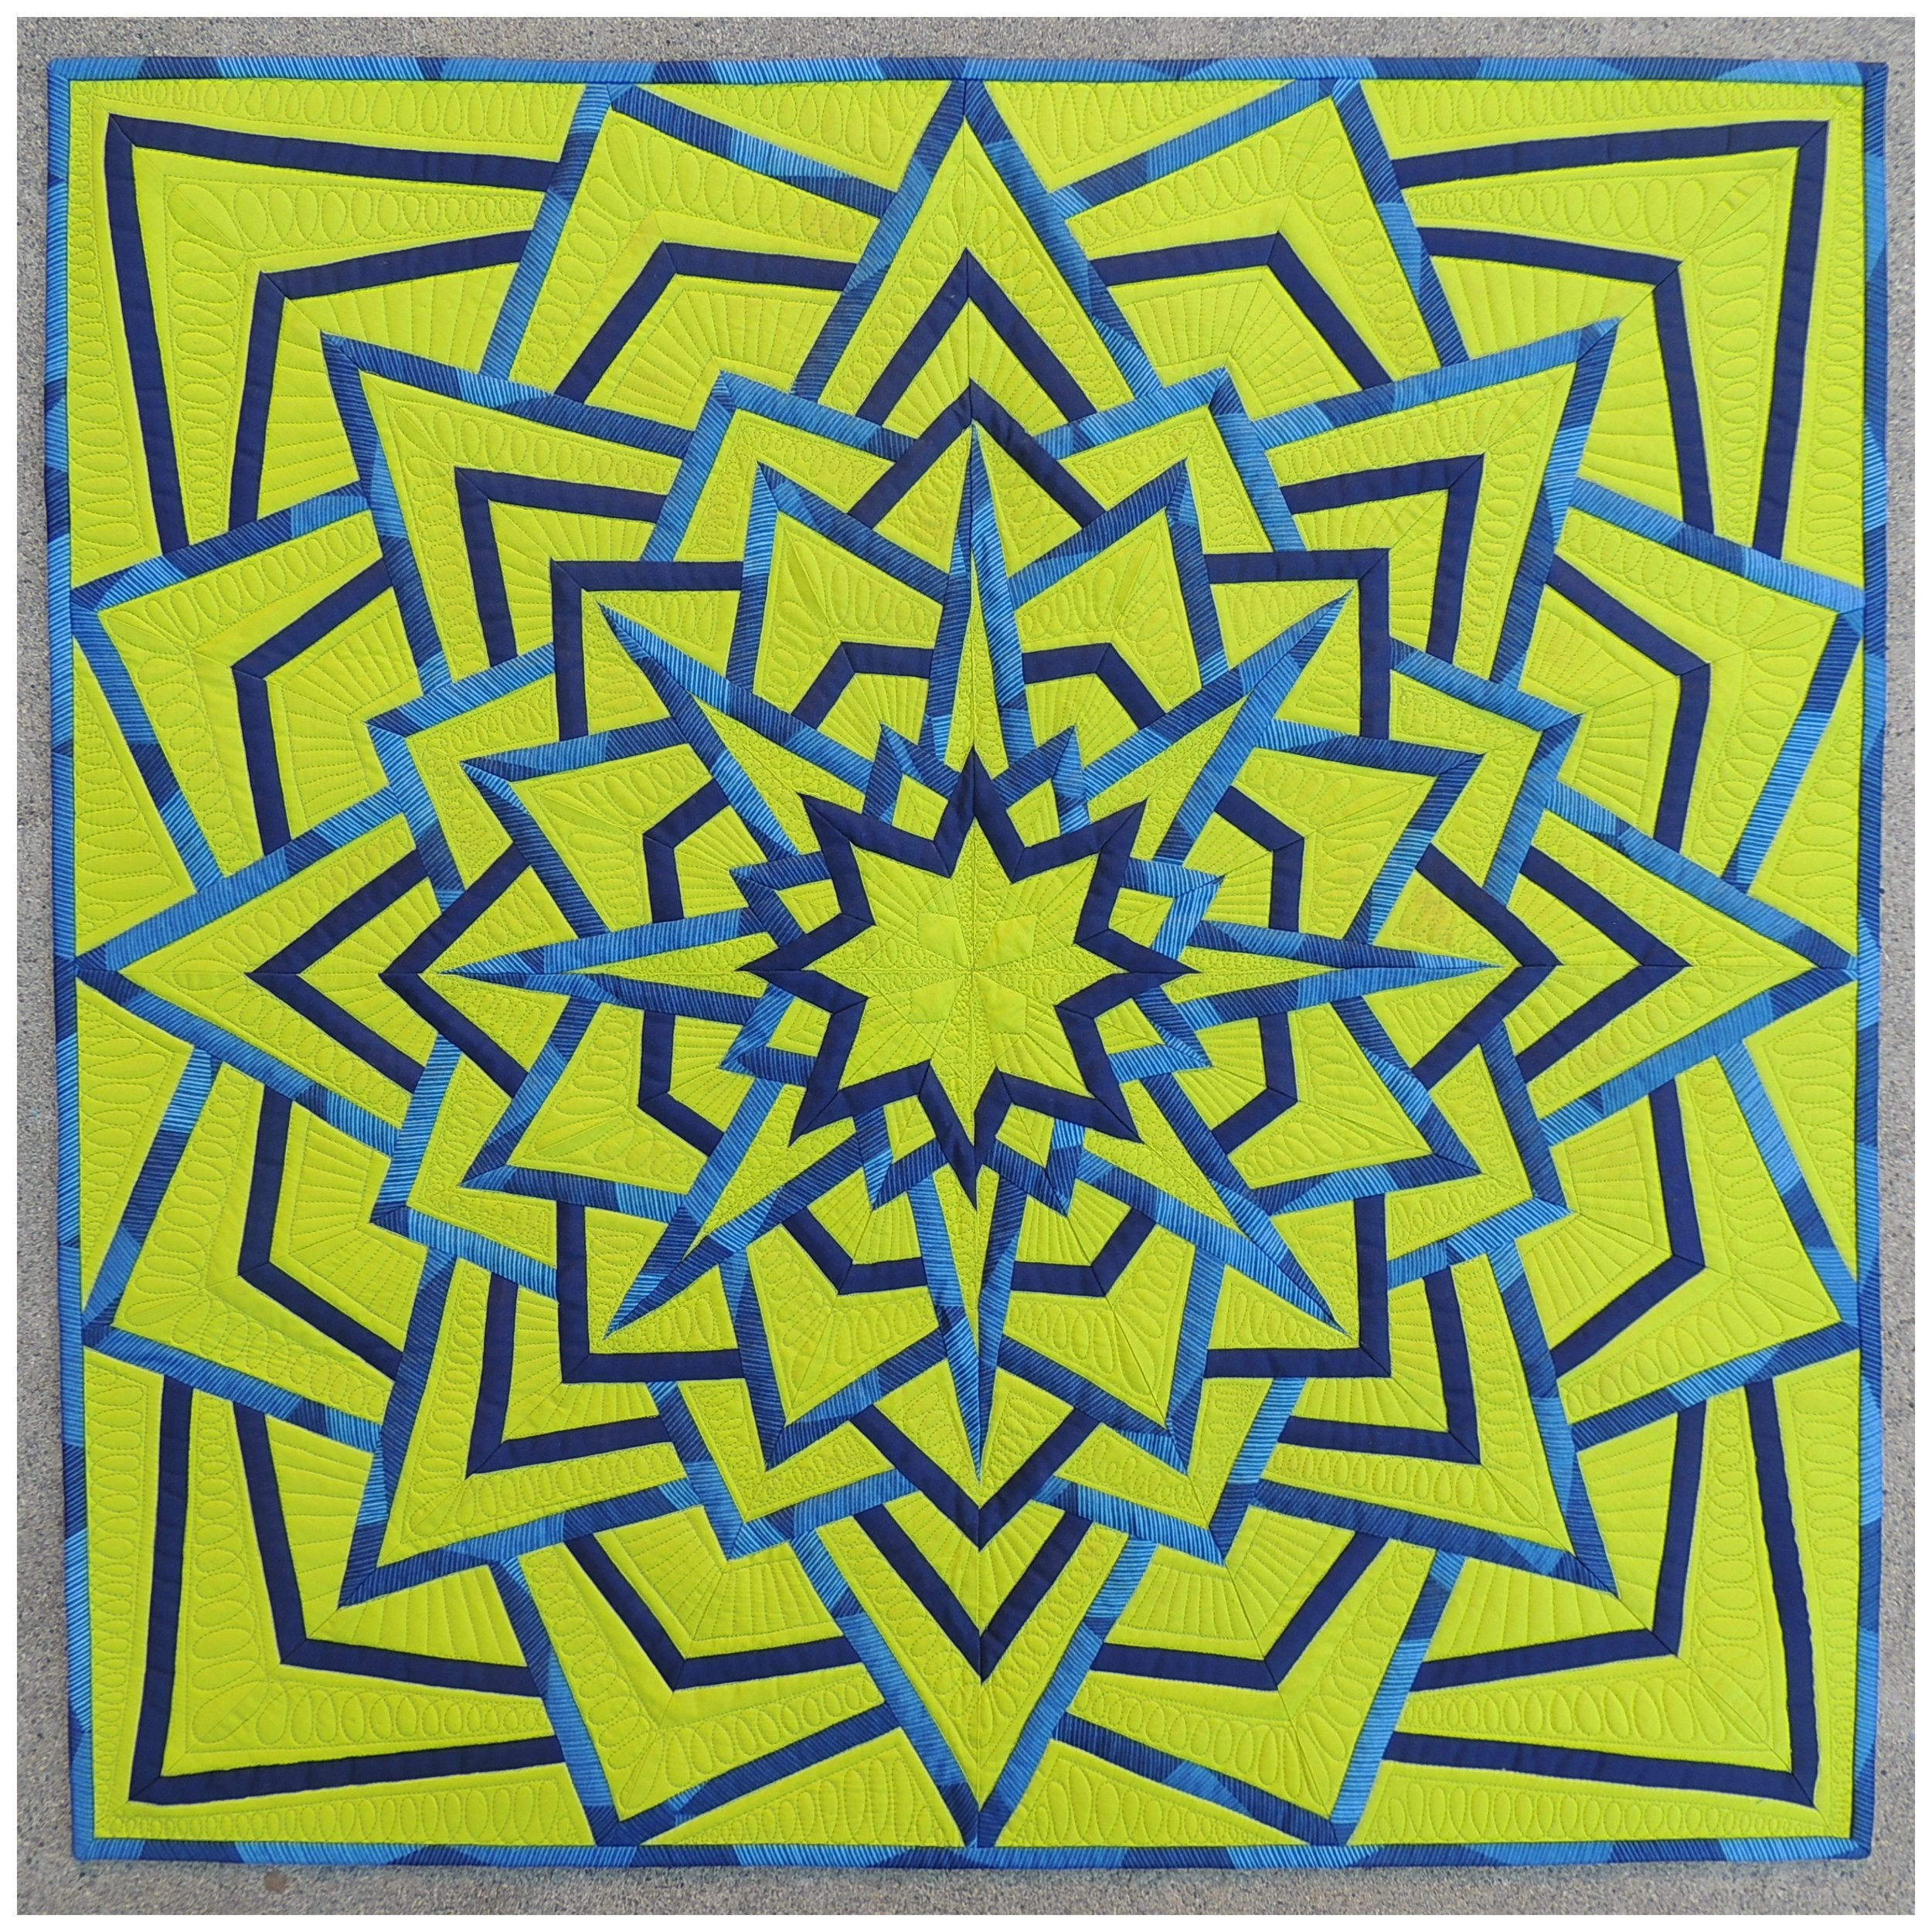 "13. Lime Light, Star Bright  November 2016 31"" x 31"" Pieced Modern Mandala made using Michael Miller solids & prints.  Exhibits/Awards: 2nd Place in Pieced Quilts at the California State Fair (July 2018), juried into Quilt Con (February 2017) and Pacific International Quilt Festival (October 2017).   Blog Post"